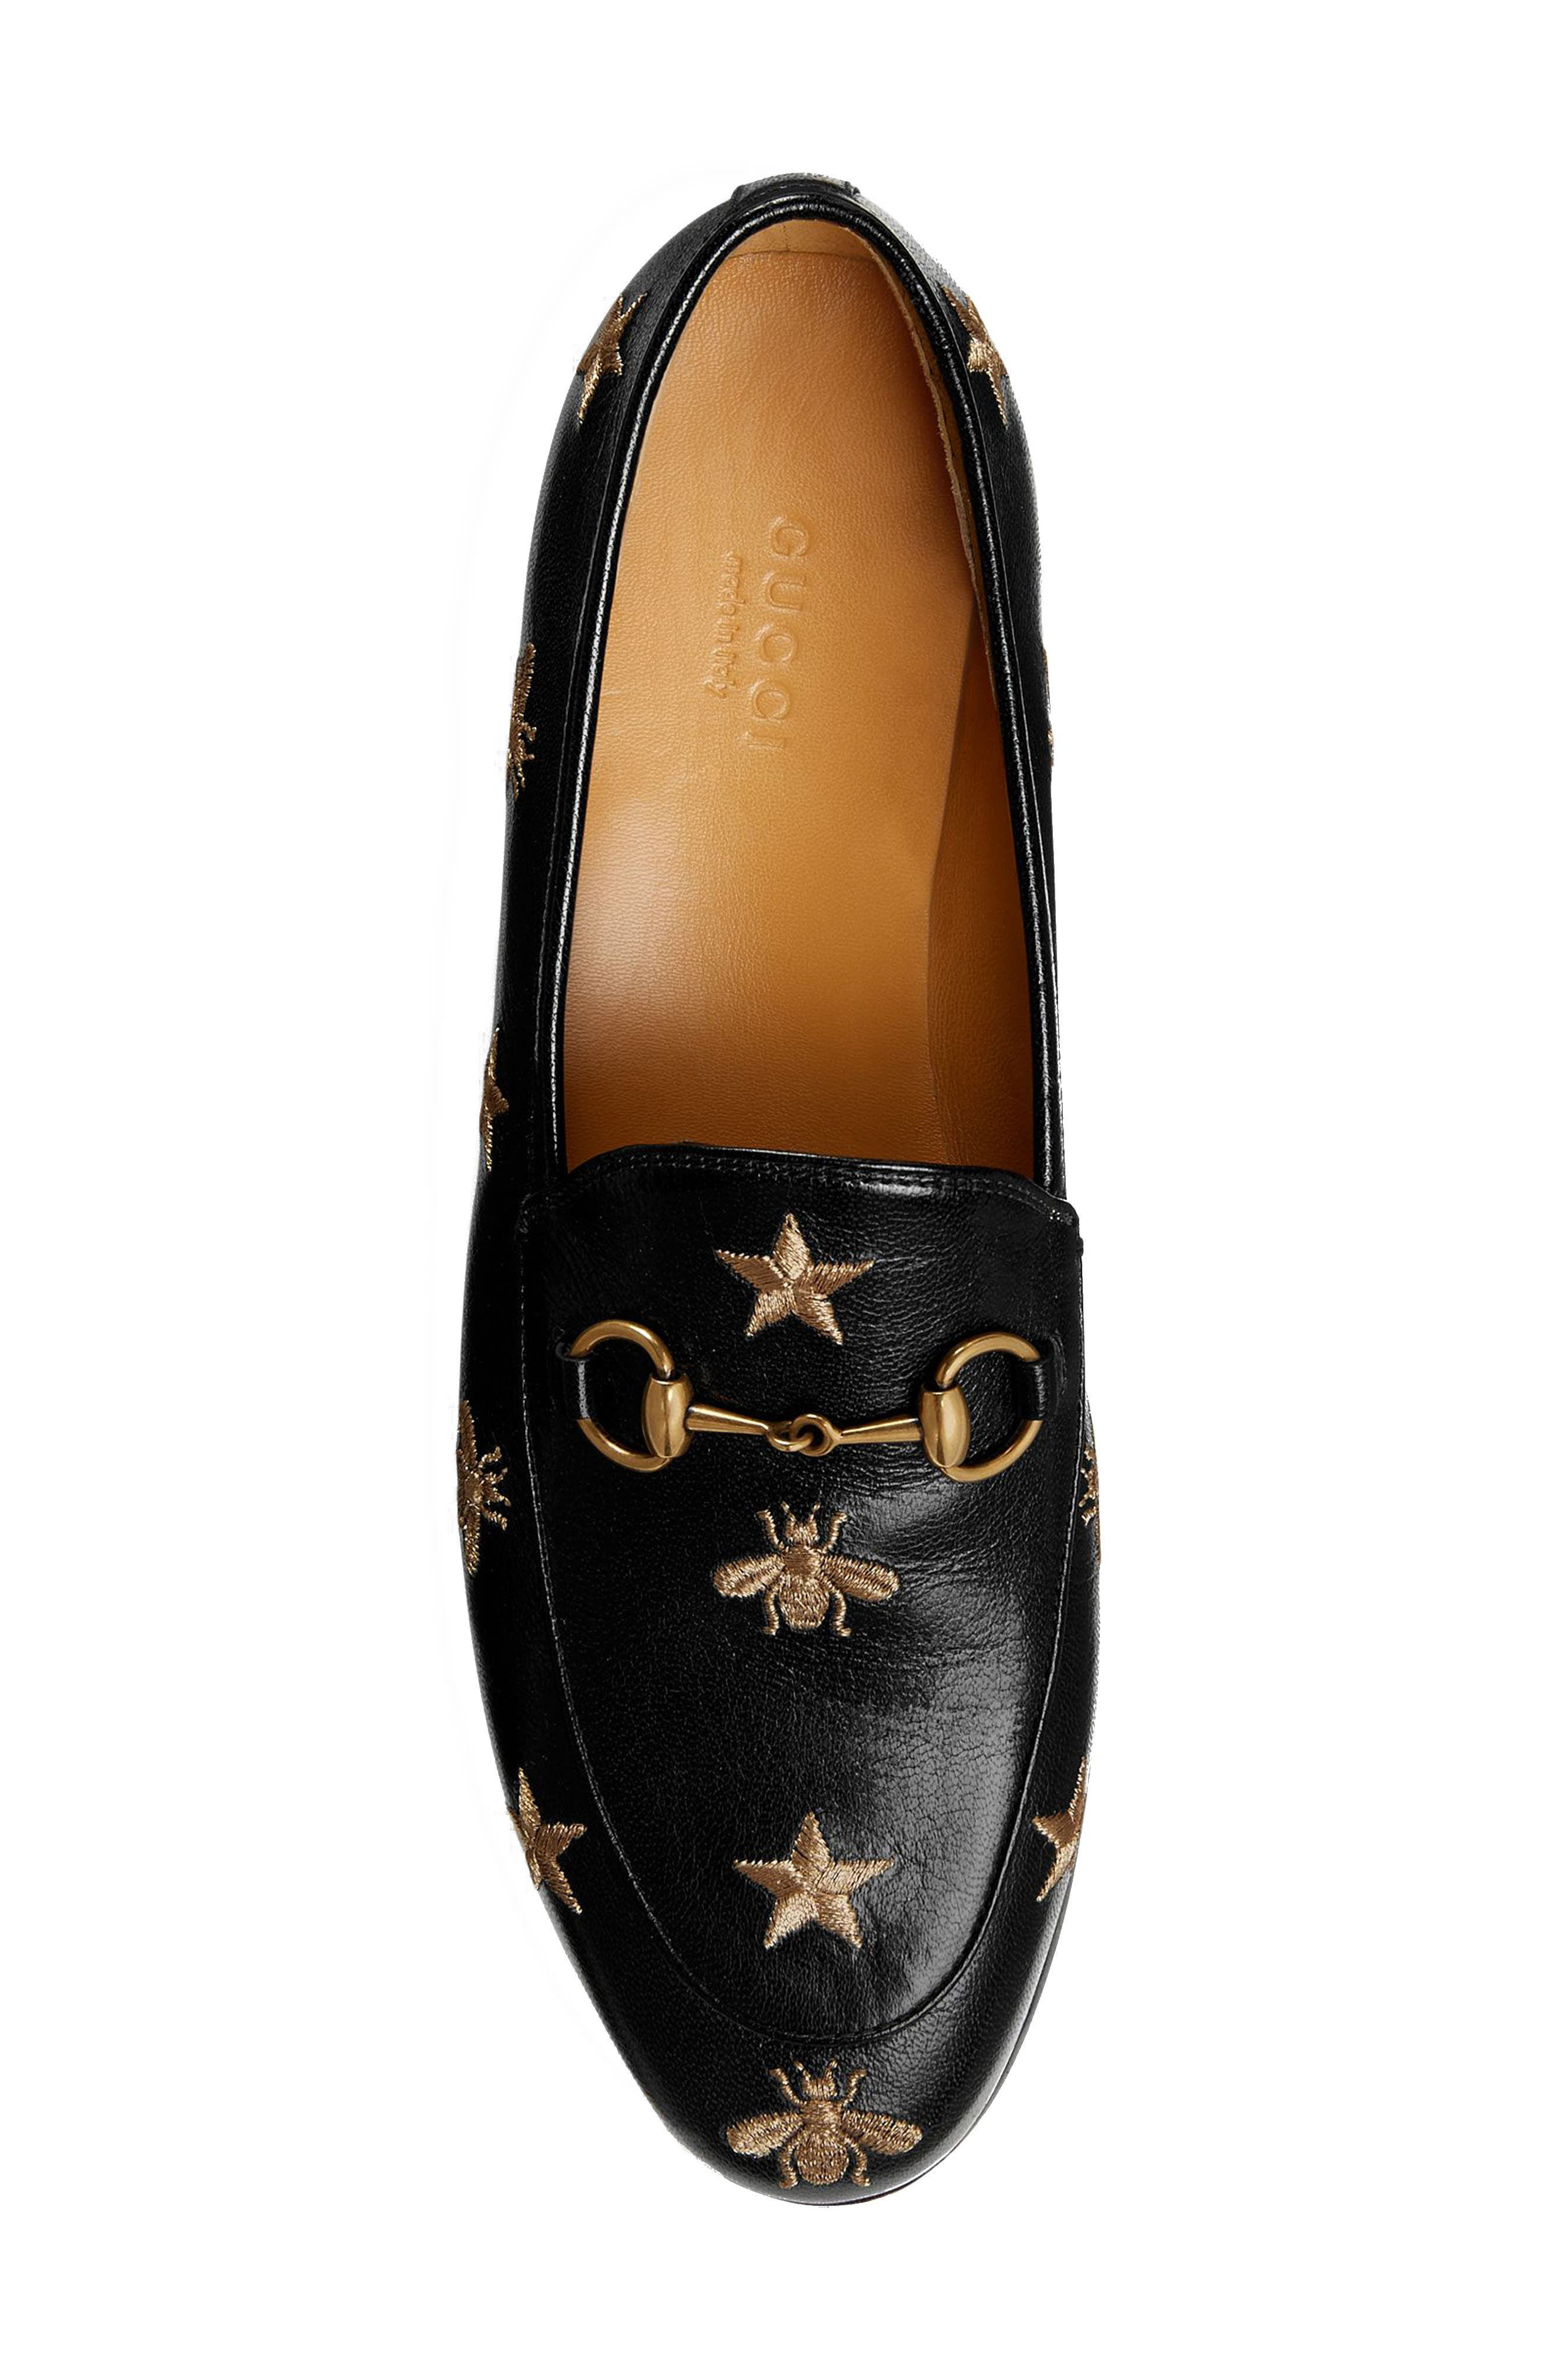 GUCCI, Jordaan Embroidered Bee Loafer, Alternate thumbnail 3, color, BLACK